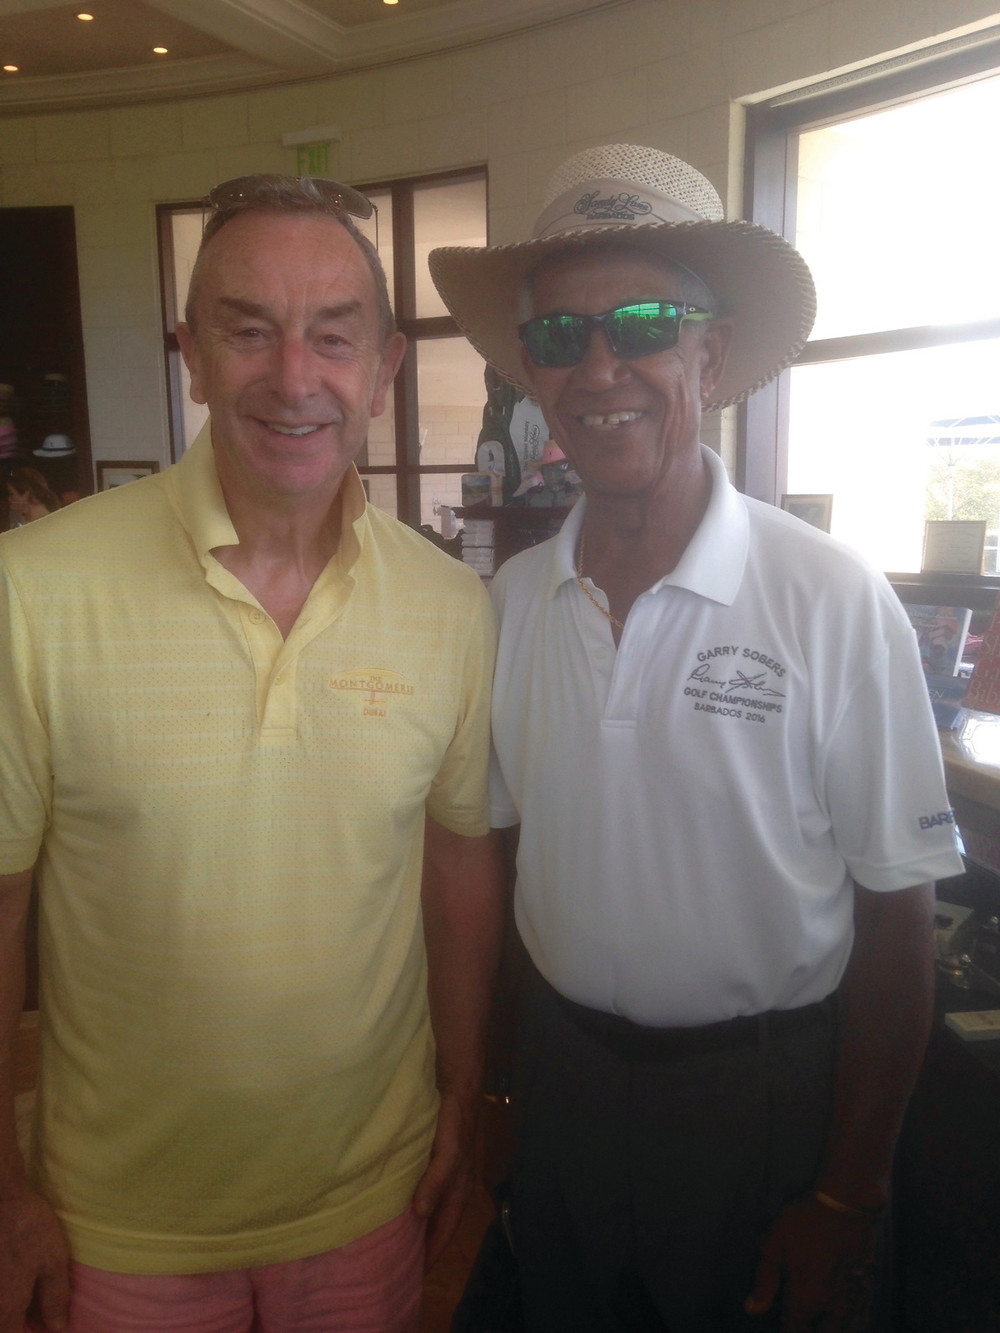 David Lloyd with Garry Sobers at Sandy Lane